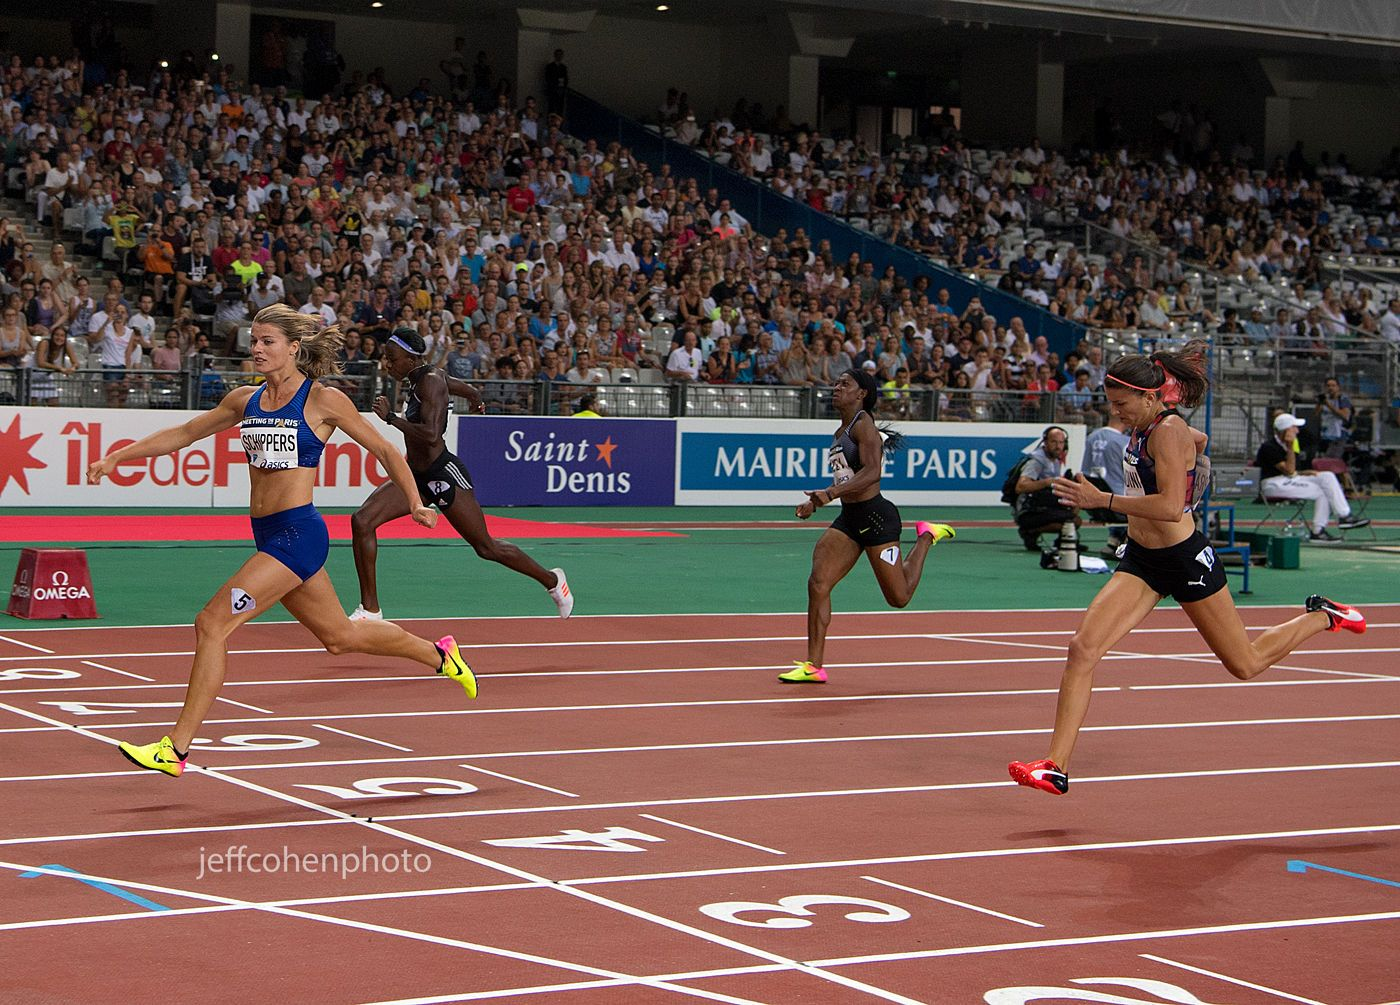 1r2016_meeting_de_paris_schippers_200m_jeff_cohen_photo_1281_web.jpg